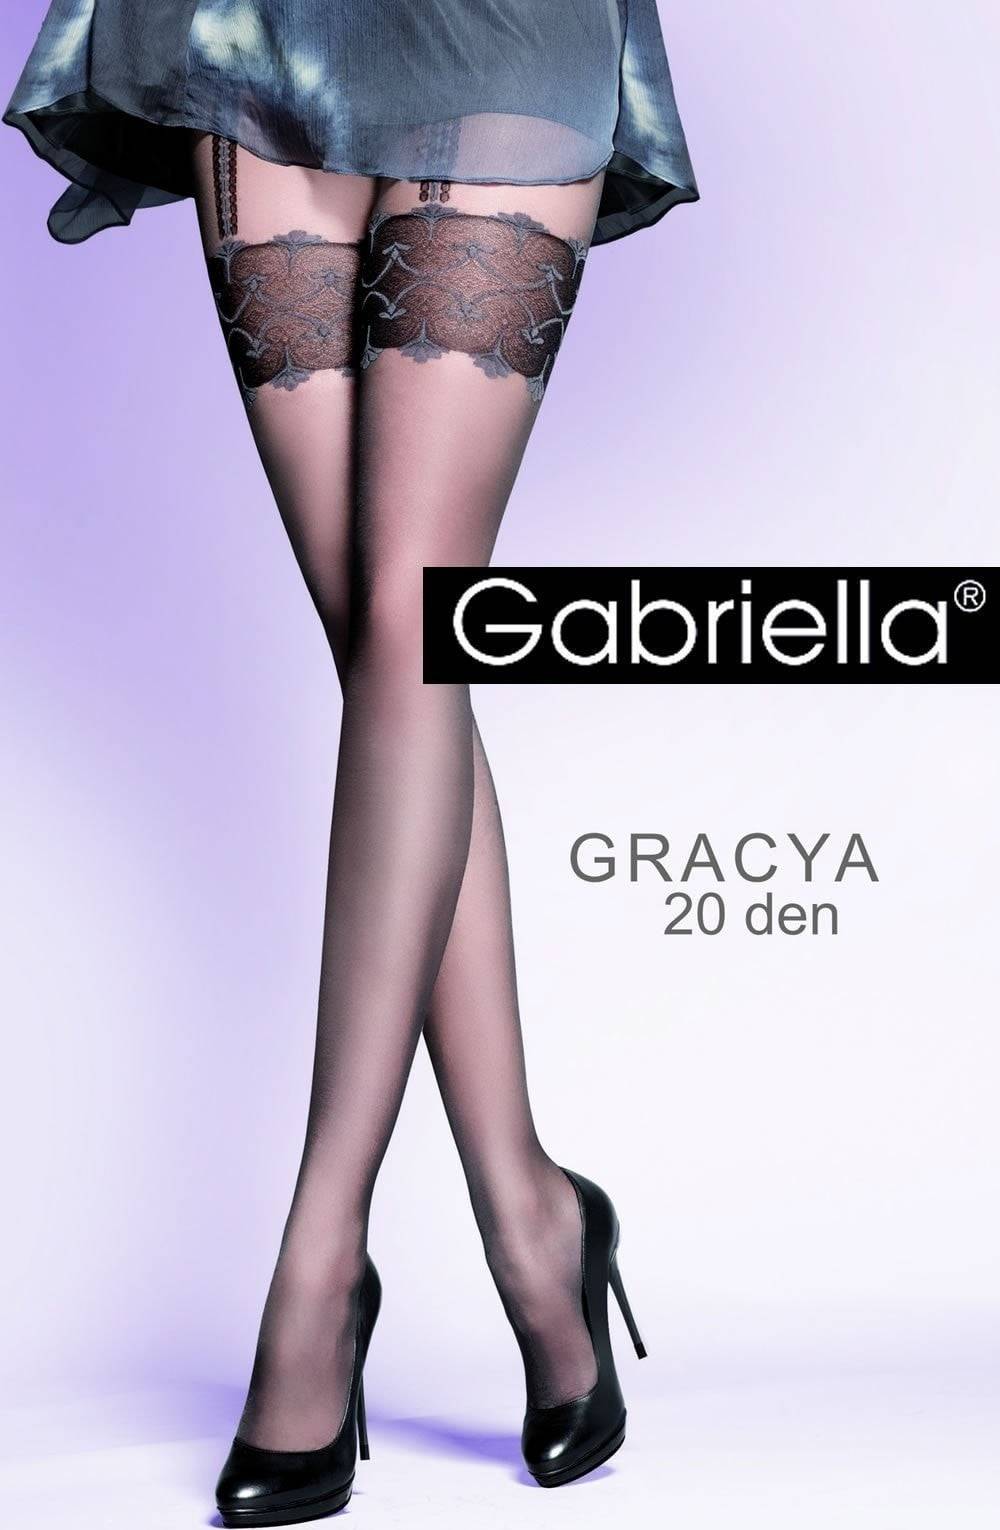 Gabriella Gracya Tights - Tights - Gabriella - Charm and Lace Boutique